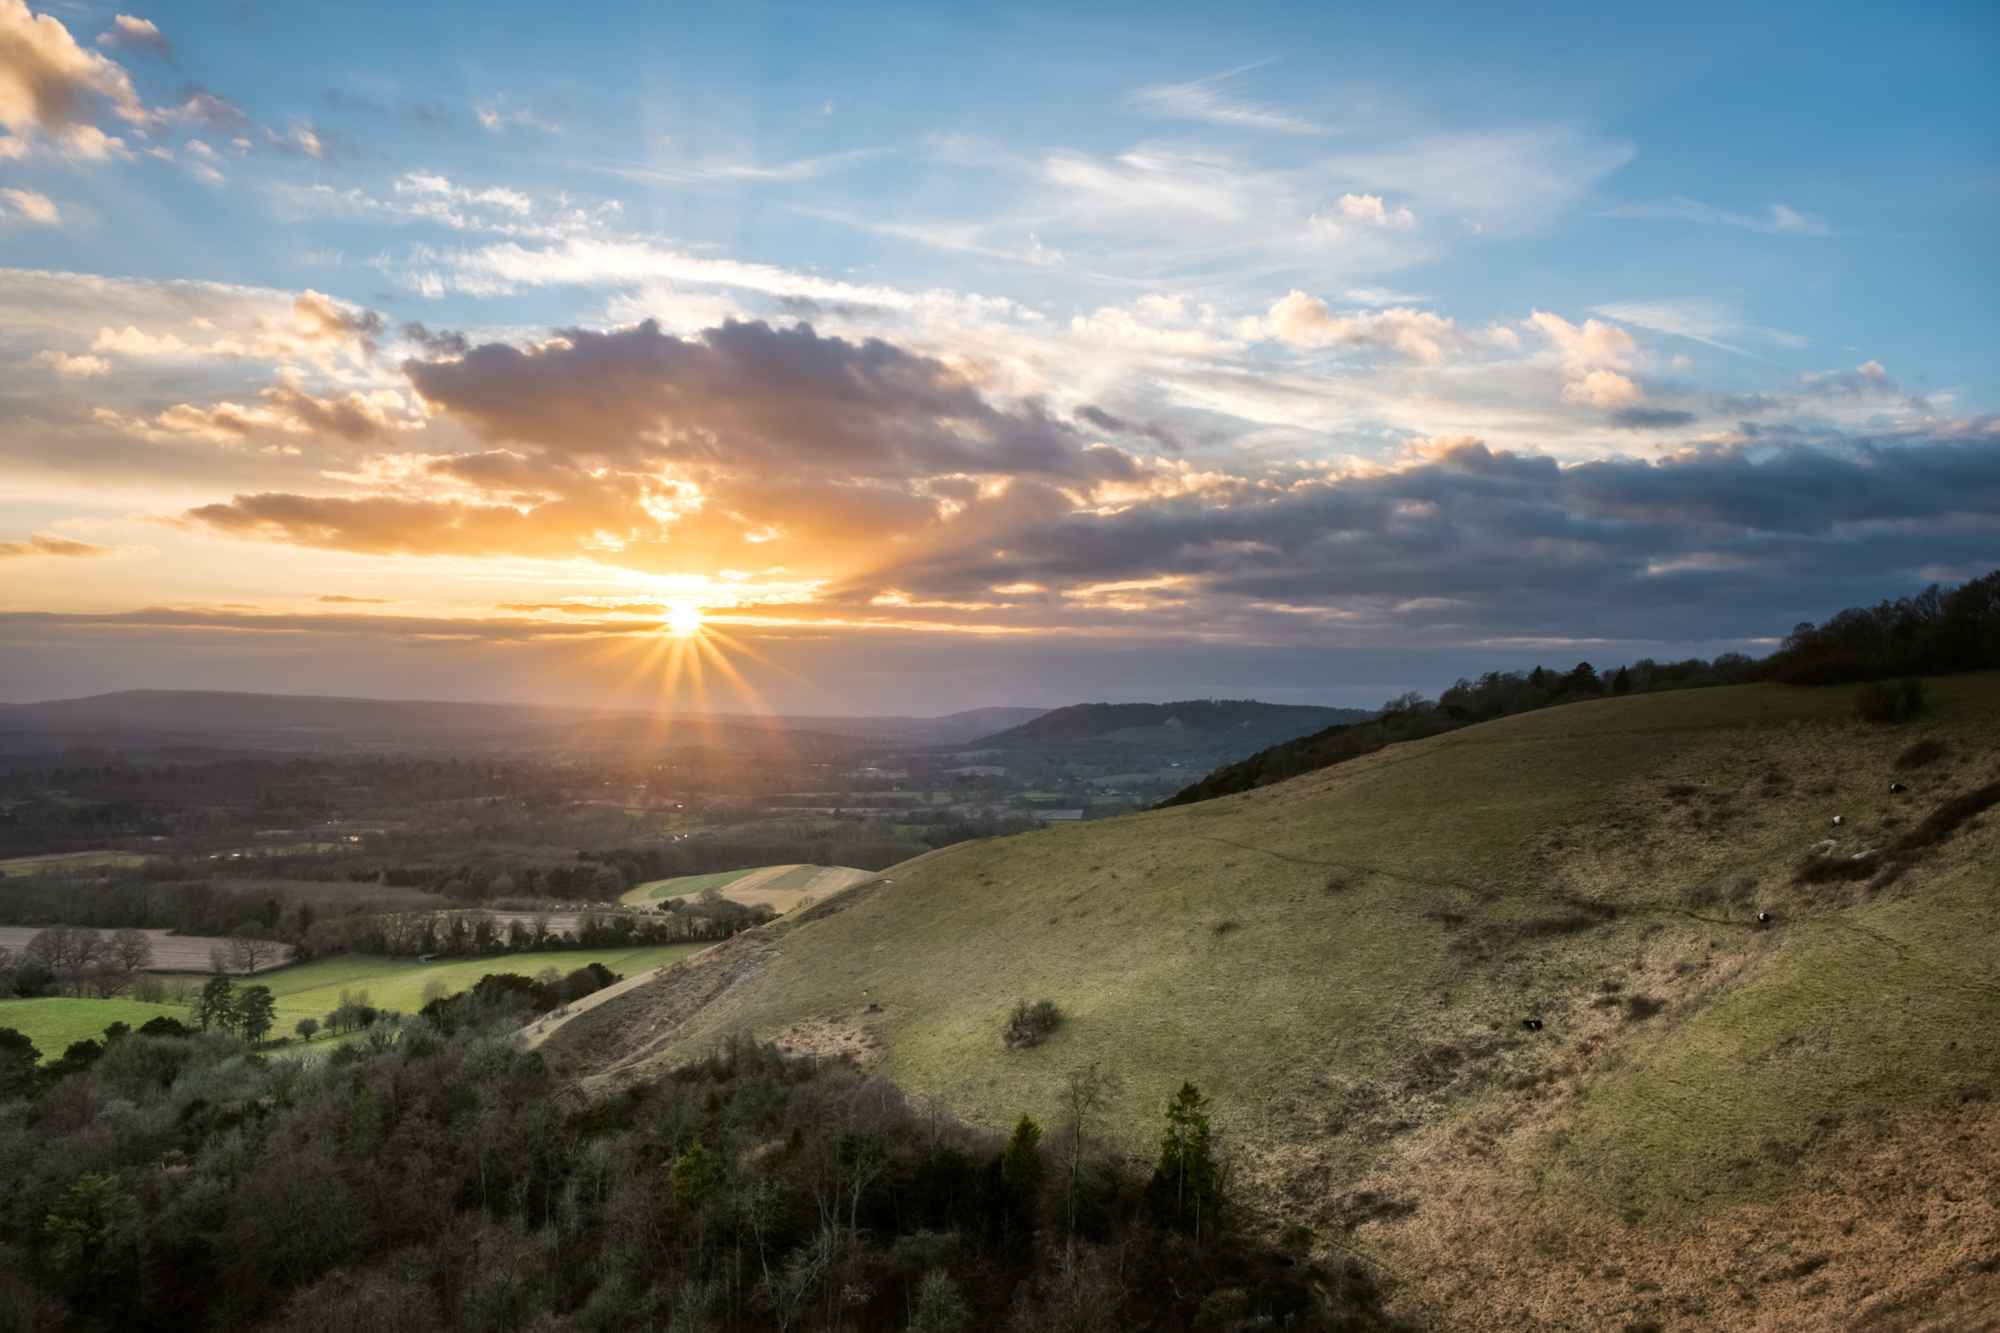 A photo of Colley Hill, Surrey, UK at sunset taken by Trevor Sherwin